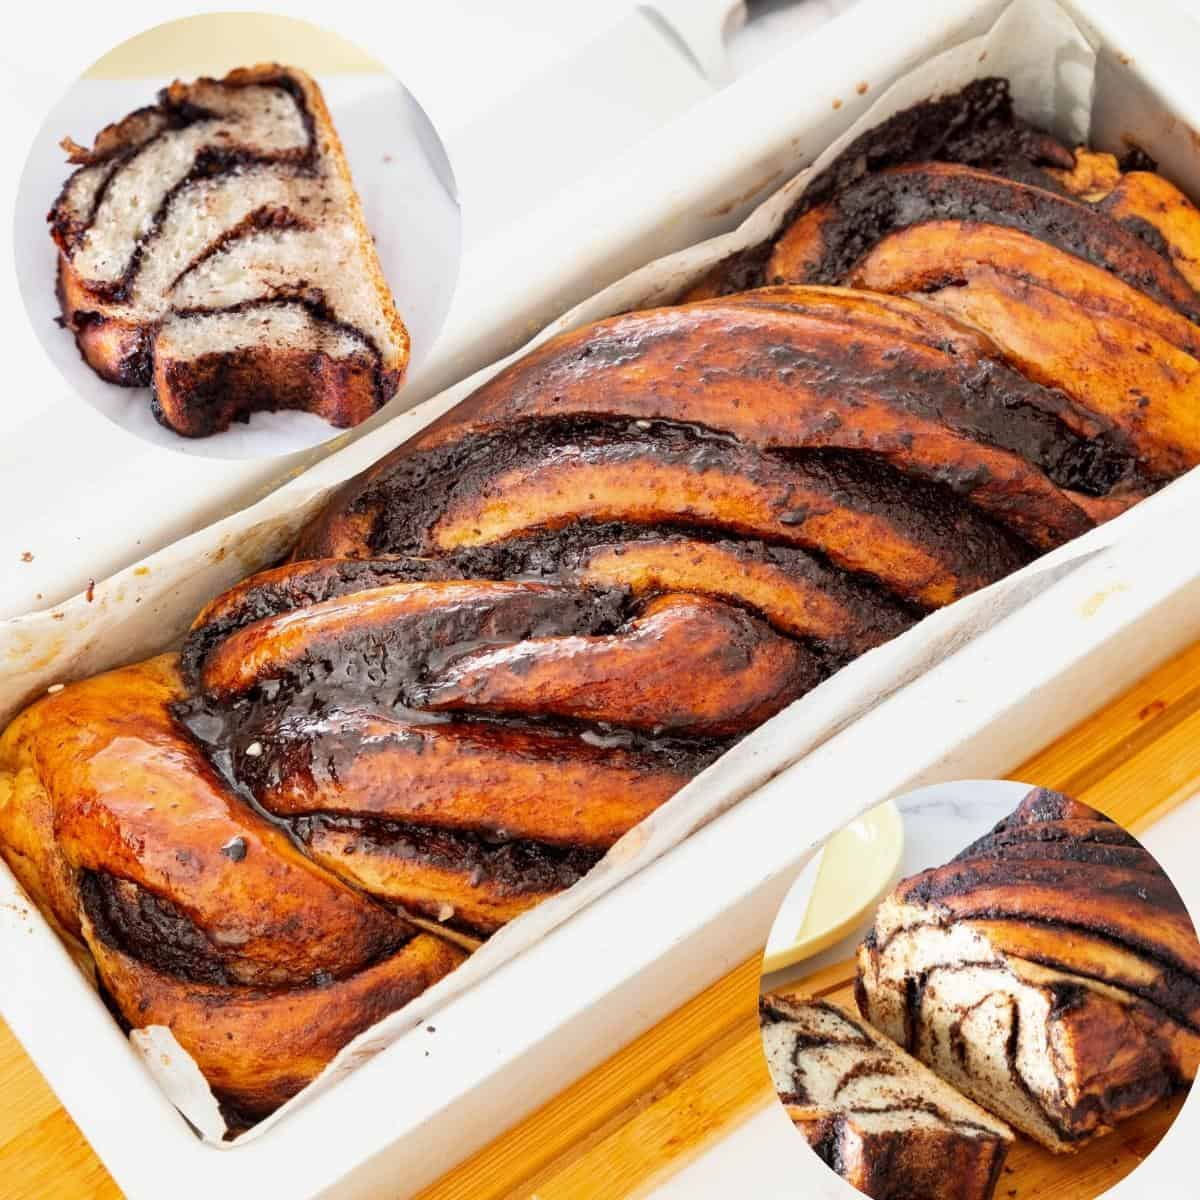 Babka with chocolate in a loaf pan.